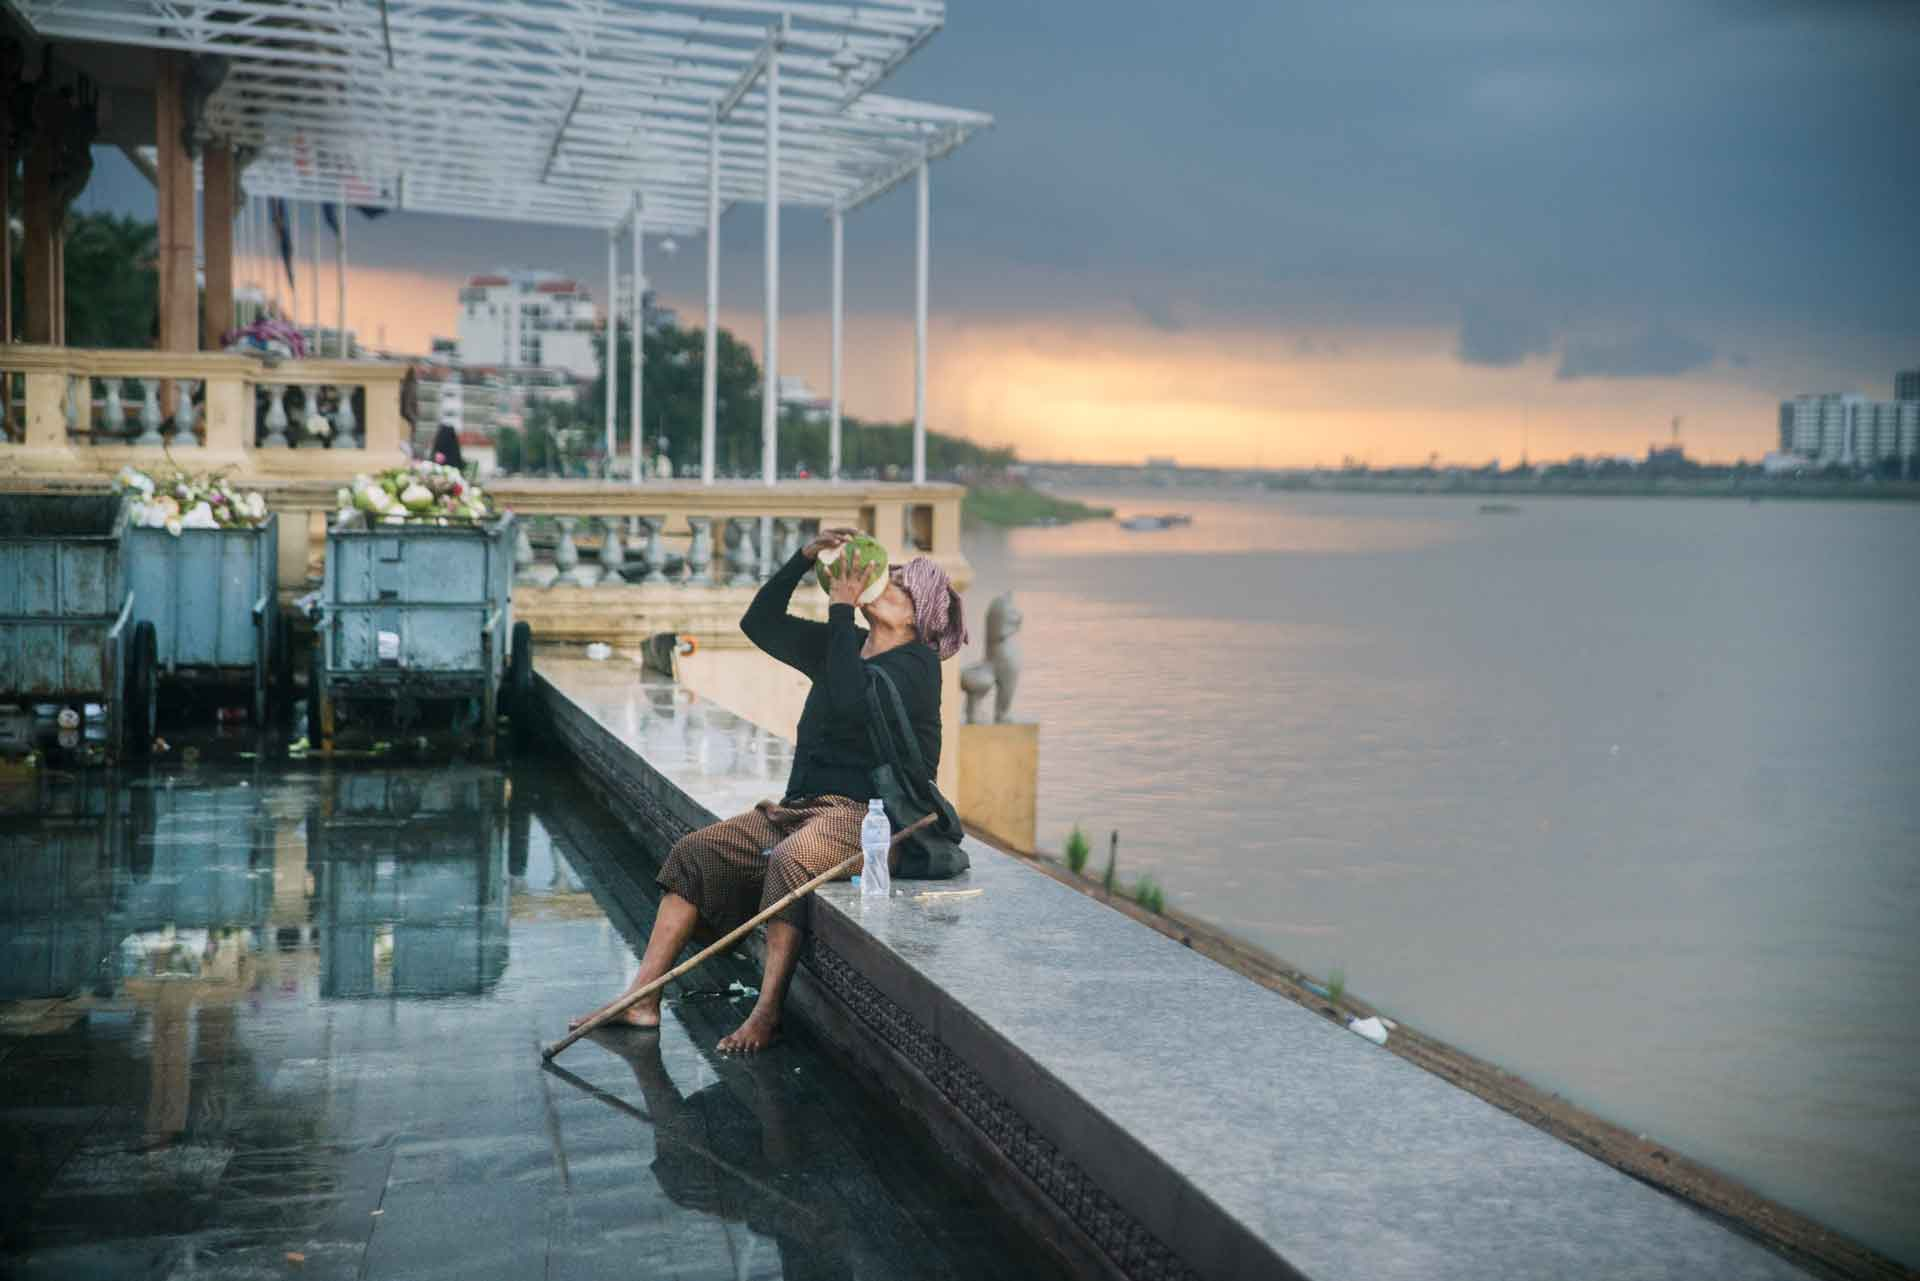 lady drinking in cambodia